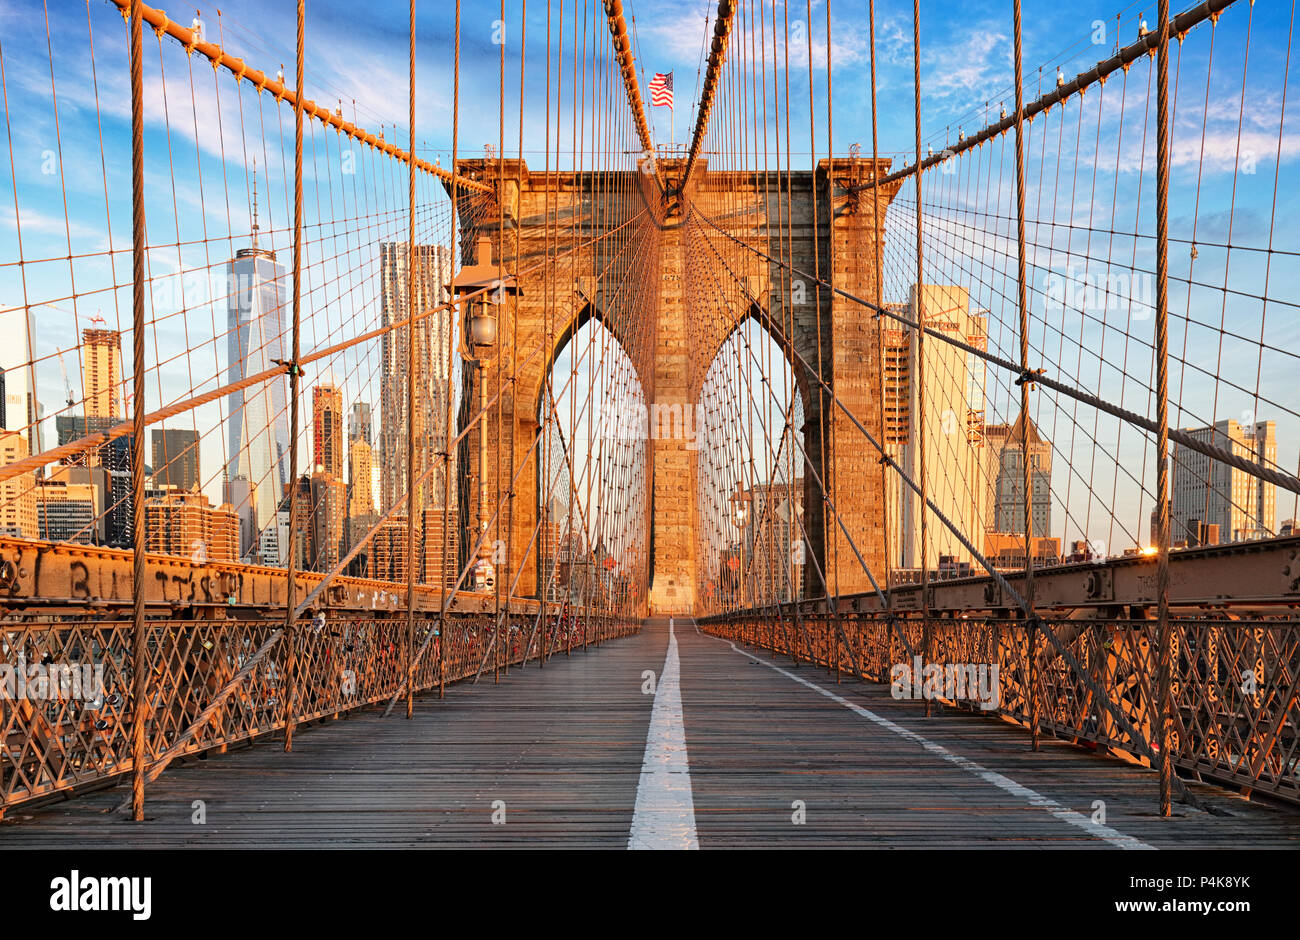 Pont de Brooklyn, New York City, personne ne Photo Stock